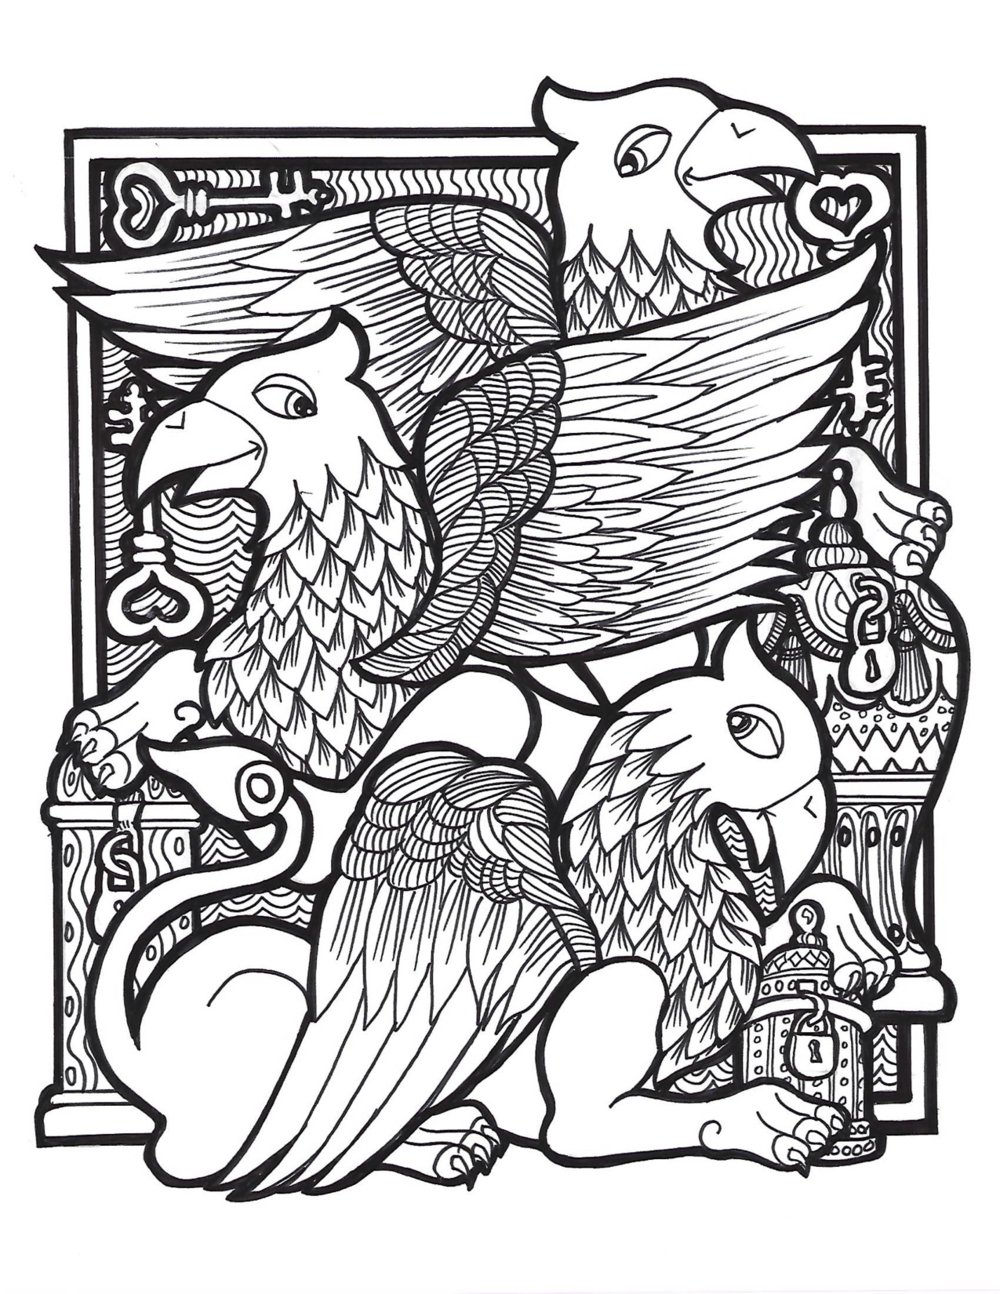 3 Griffins Coloring Page.png